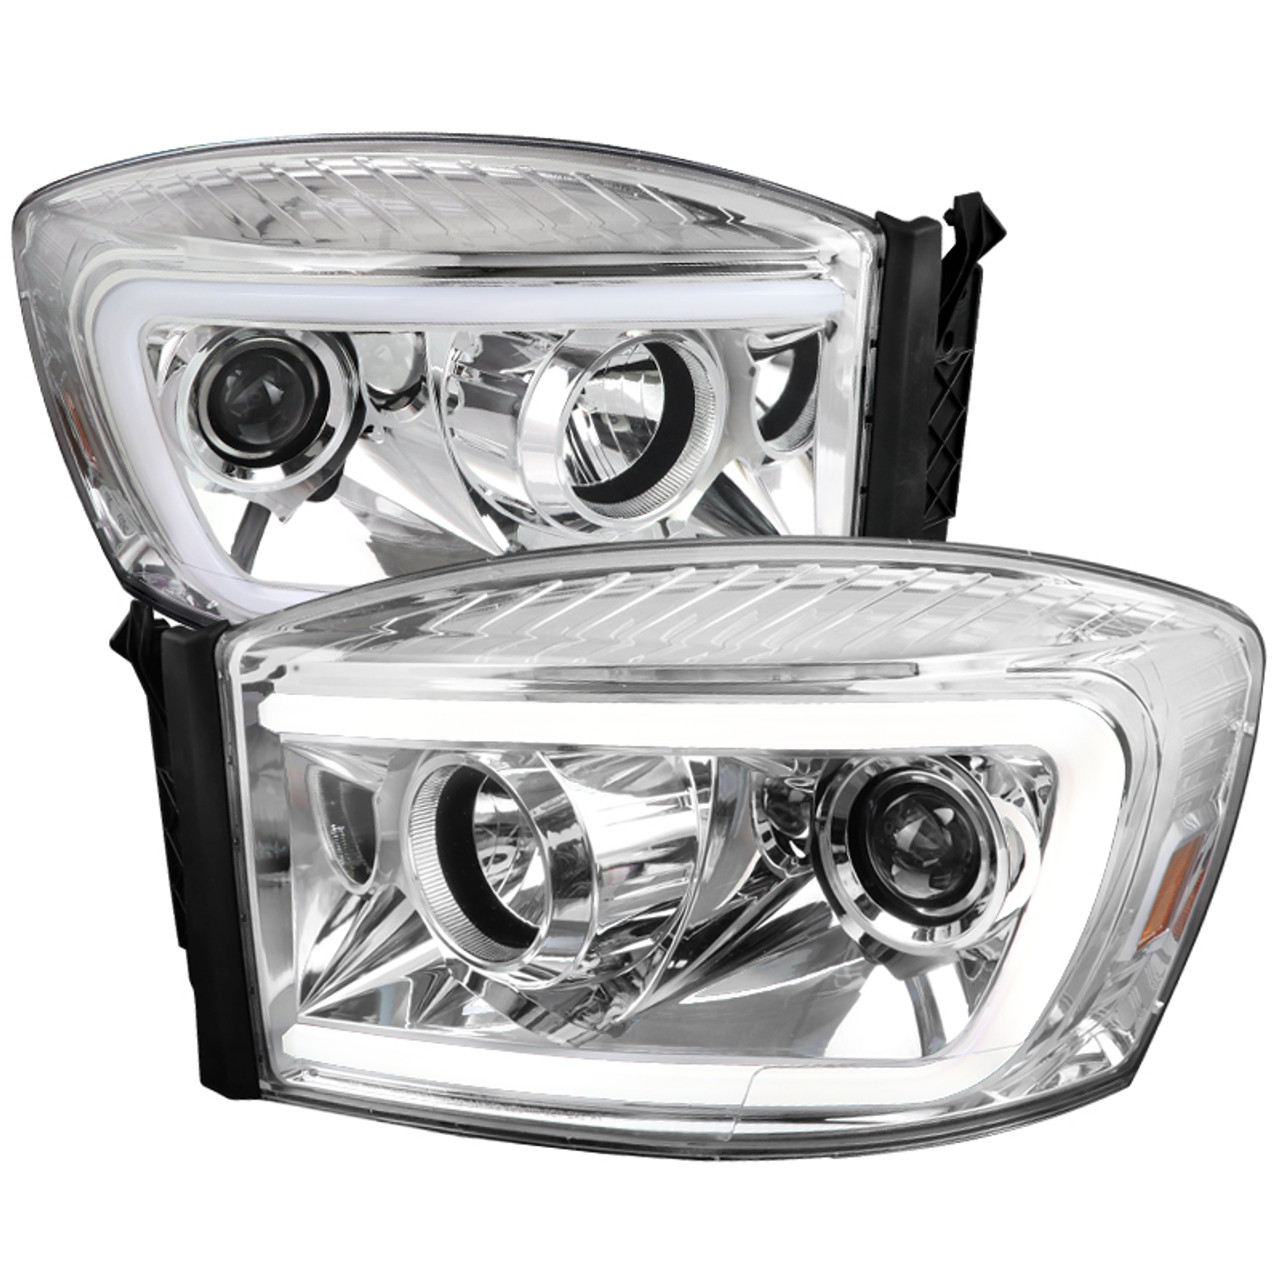 2006 2009 Dodge Ram 1500 2500 3500 Switchback Led C Bar Projector Headlights Chrome Housing Clear Lens Spec D Tuning